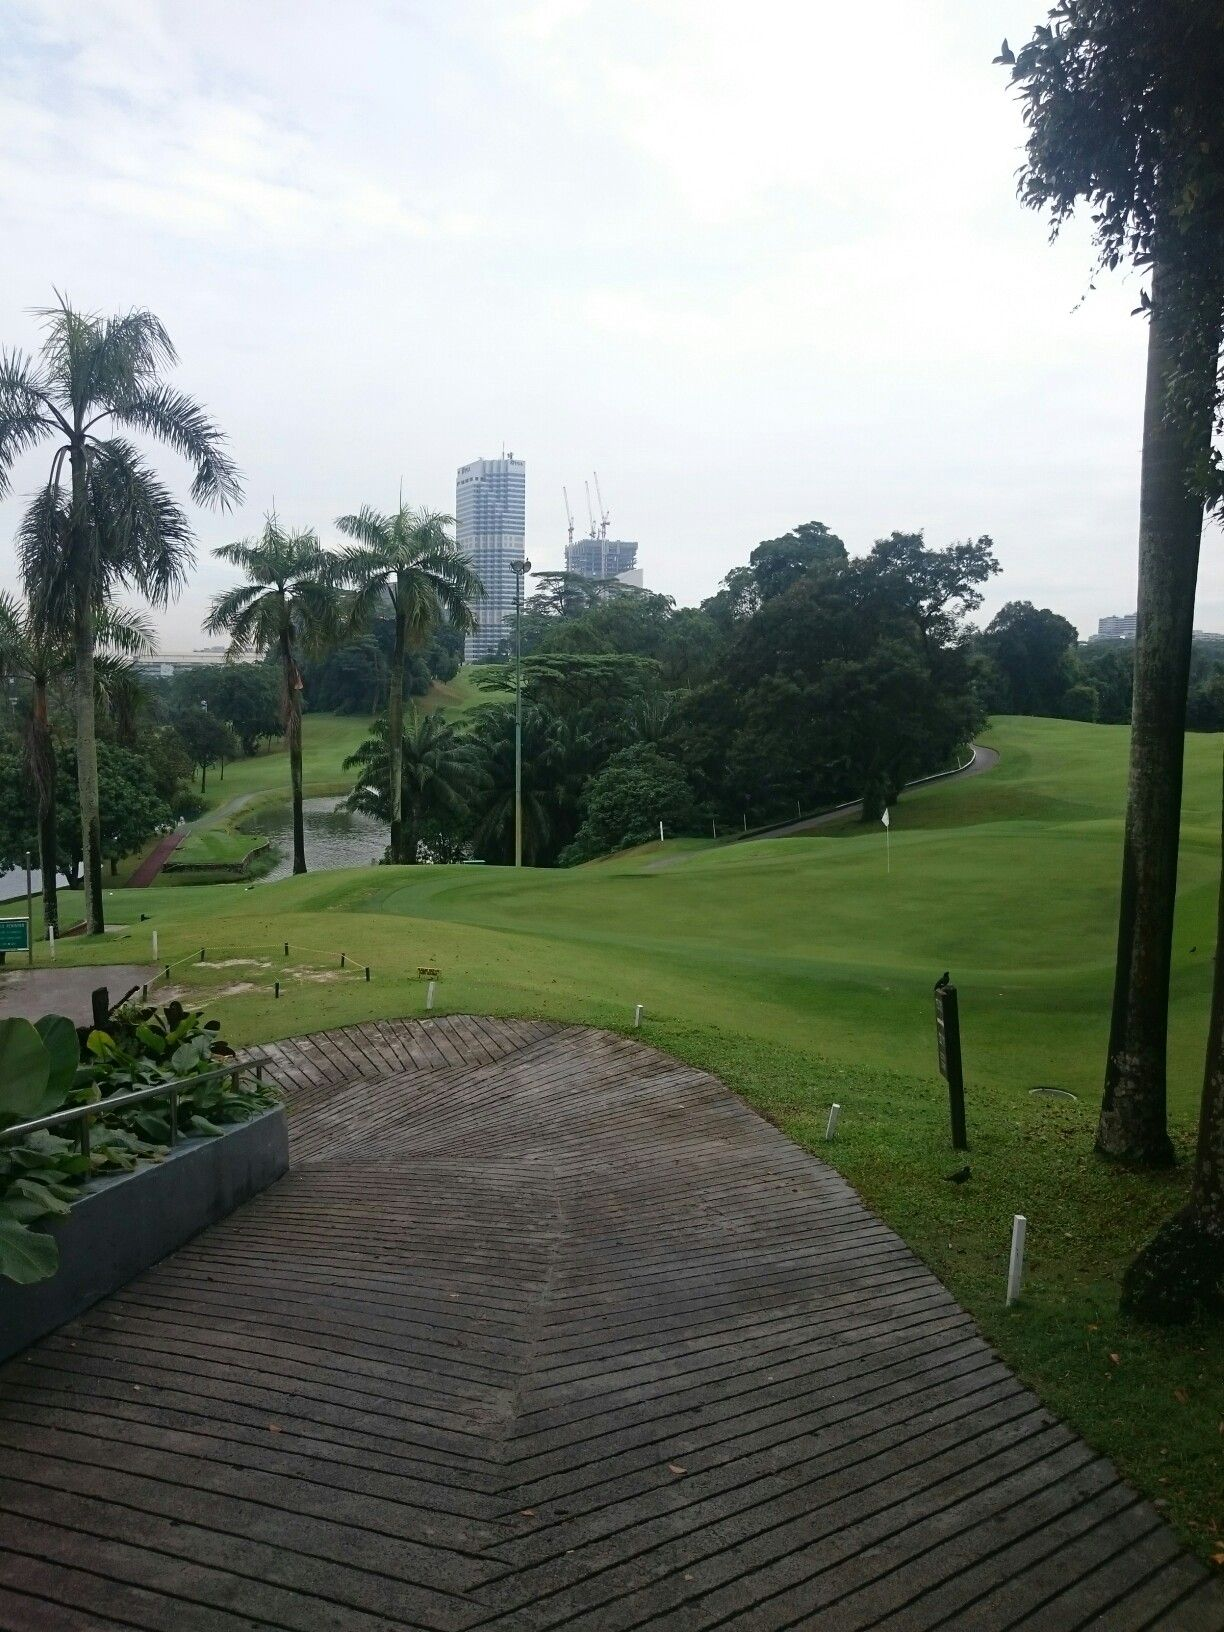 The Keppel Club Singapore Golfers Will Relish The 5 917 Metres Of Our Par 72 Undulating Golf Course Designed By Ronald Fr Golf Courses Golf Tips Golf Basics